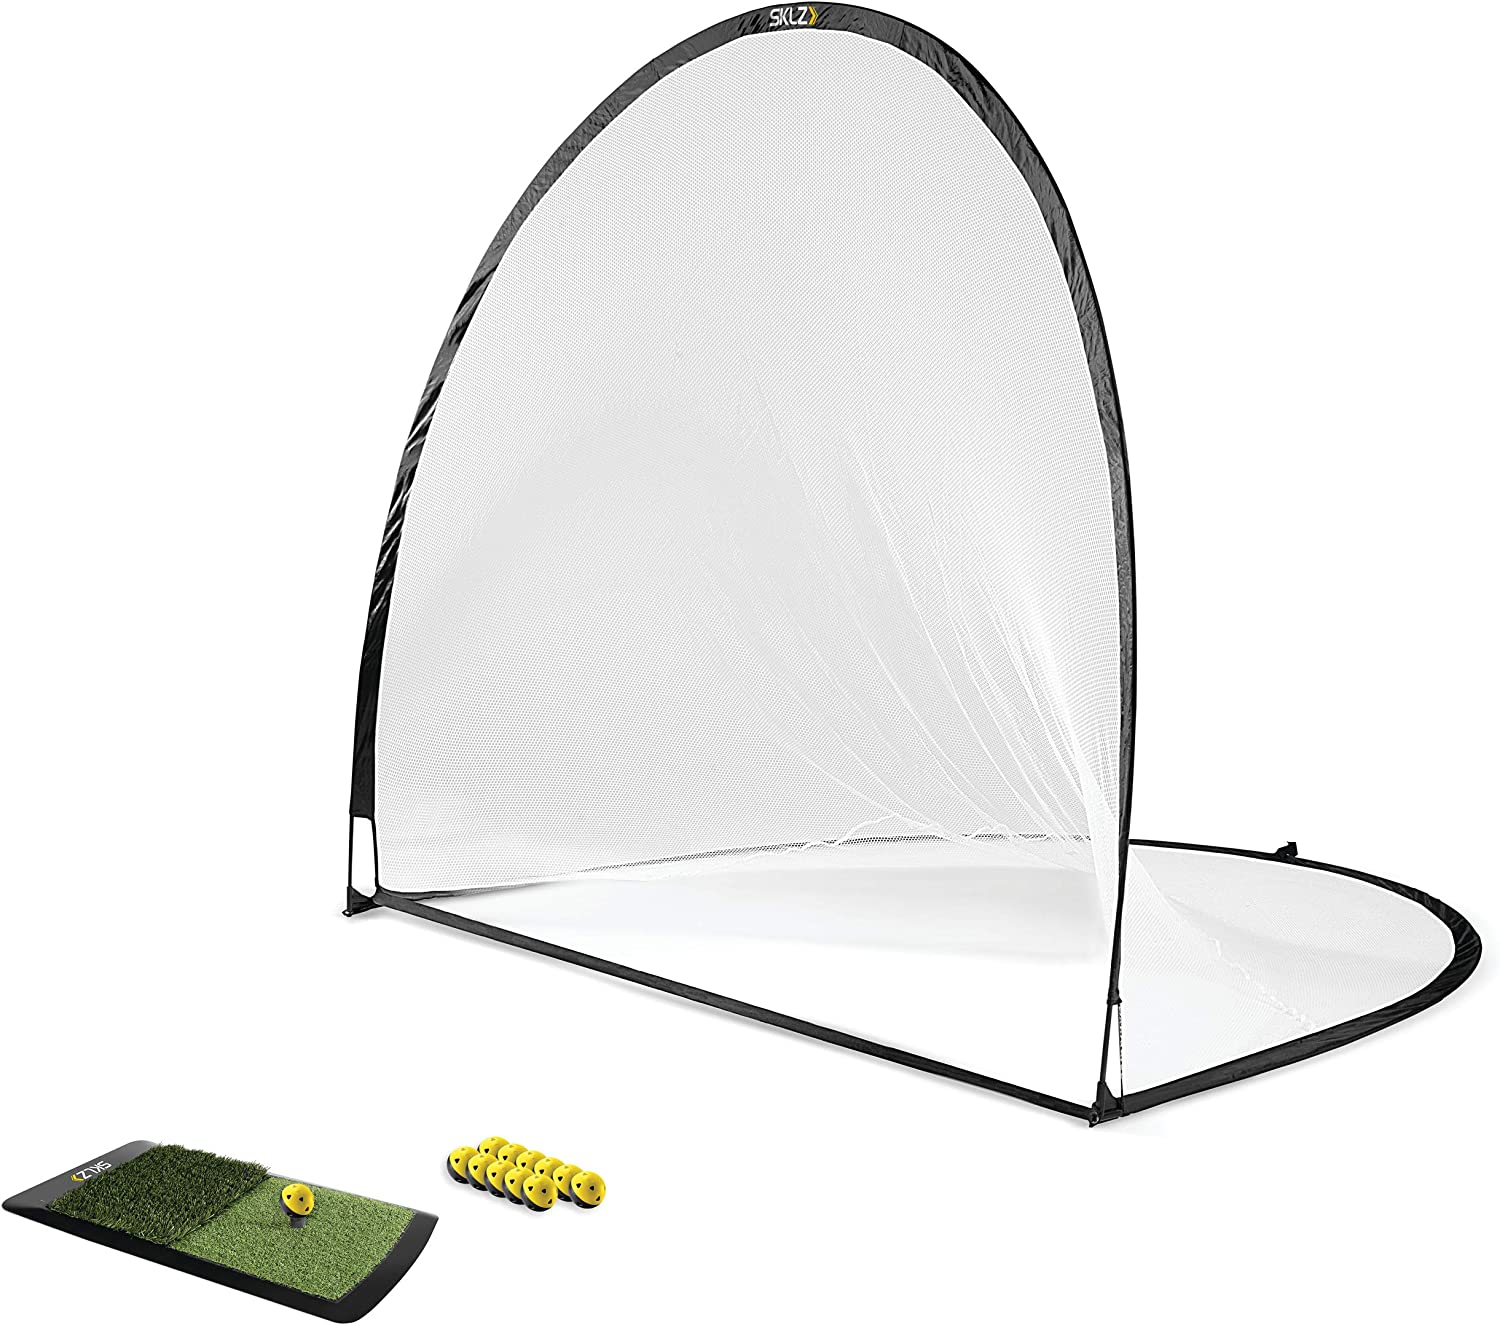 SKLZ Home Golf Driving Range Kit with Net, Golf Balls, Launch Pad, and Tees